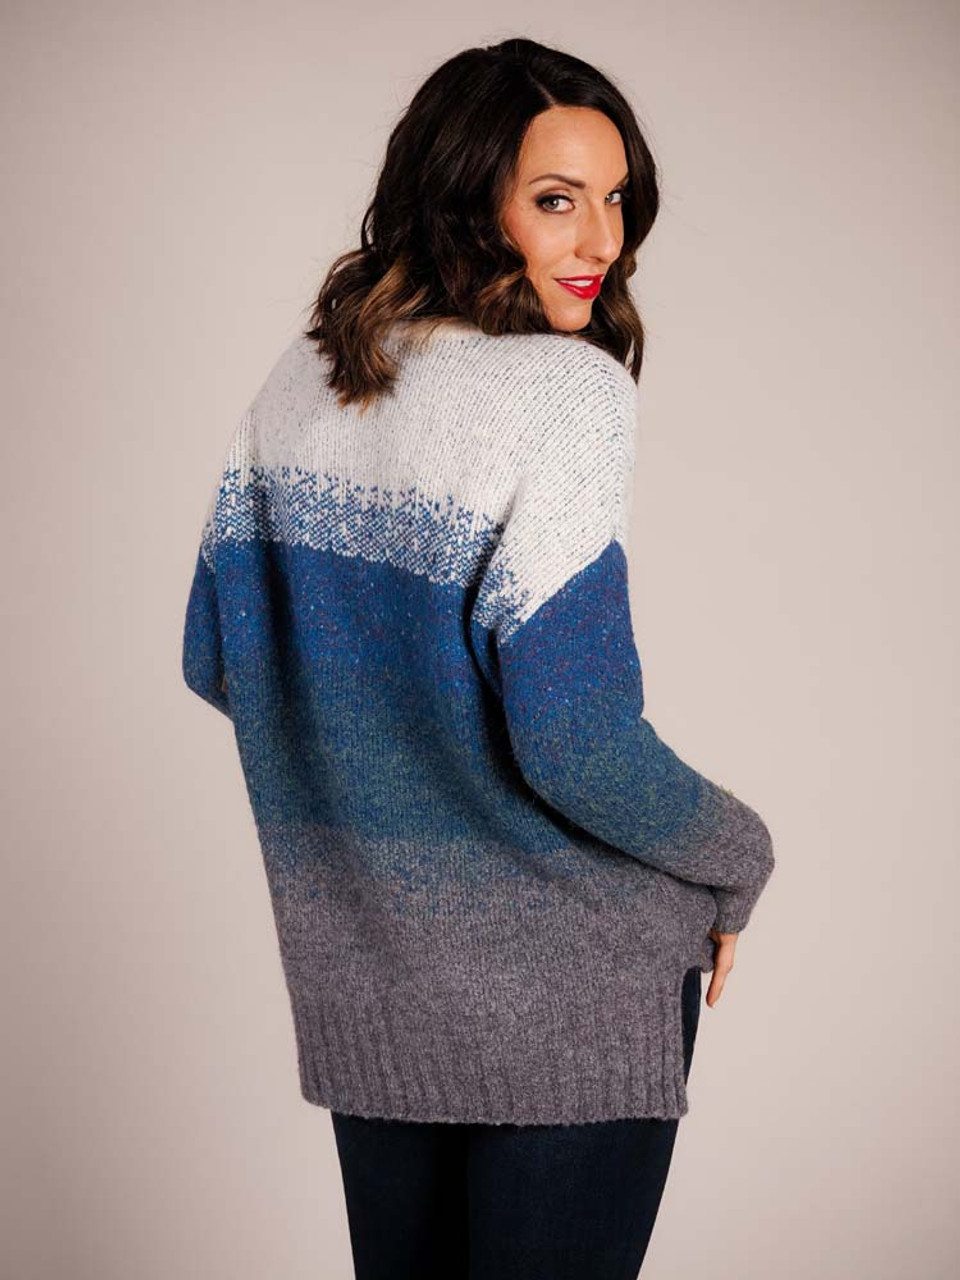 Beautiful warm sweater with bright cream around the neck and vibrant cool colors in an ombre pattern down to grey at wrists and waist, slightly longer in back than front